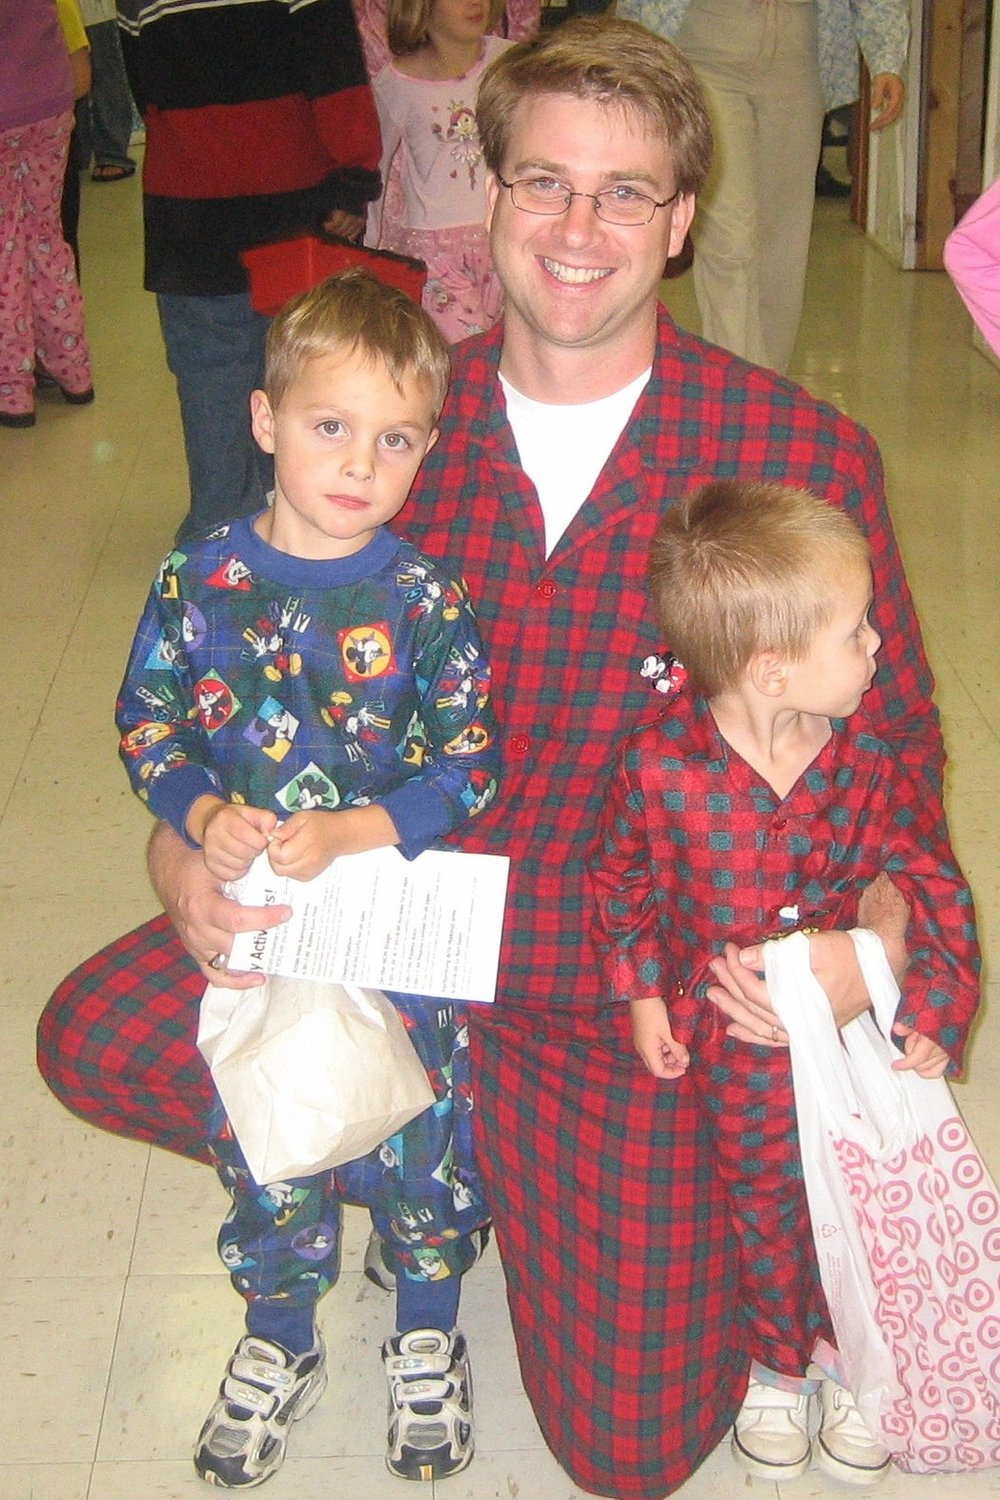 Jim with his sons at a 2005 Pajama Party